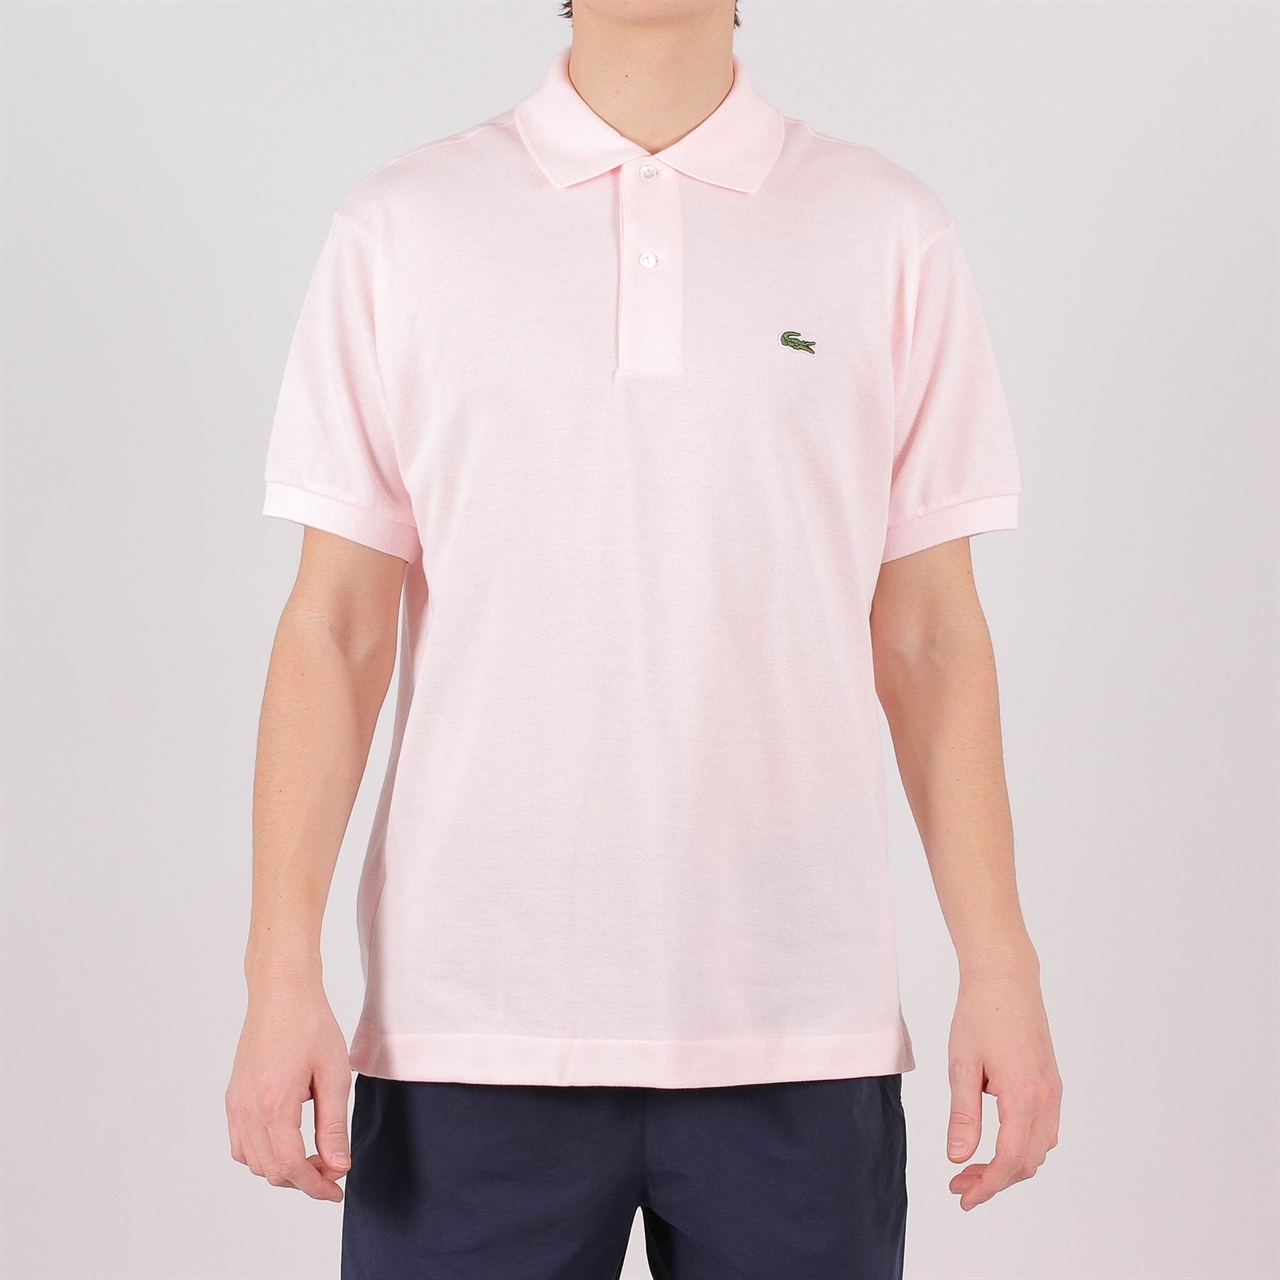 Lacoste Light Light Lacoste Grey Light Polo Grey Polo Lacoste Polo PuOXkwZiT